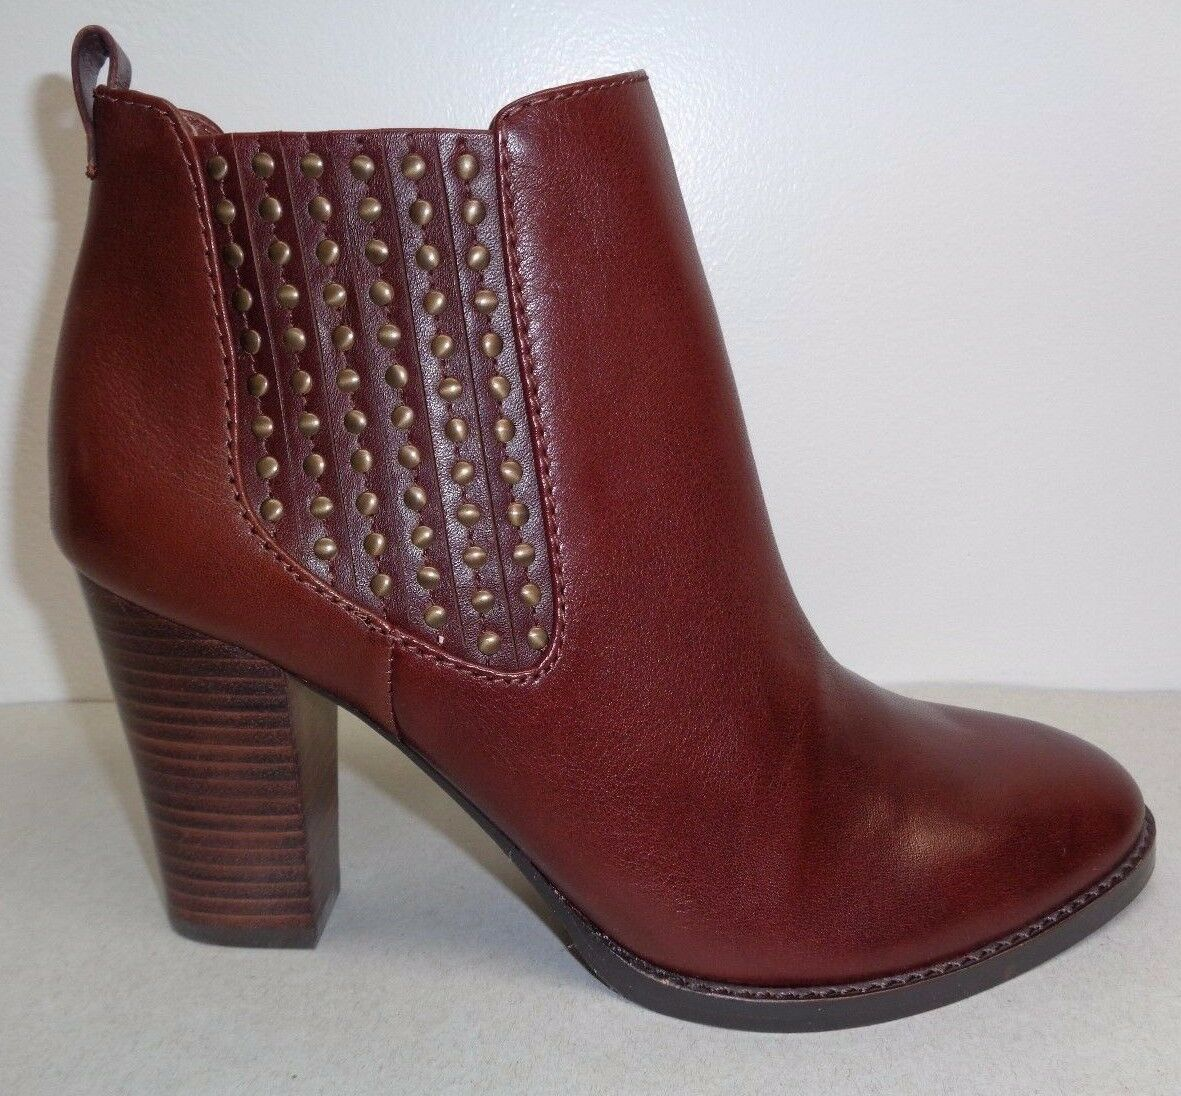 Antonio Melani Size 6.5 M EADIE Woodberry Leather Ankle Boots New Womens Shoes